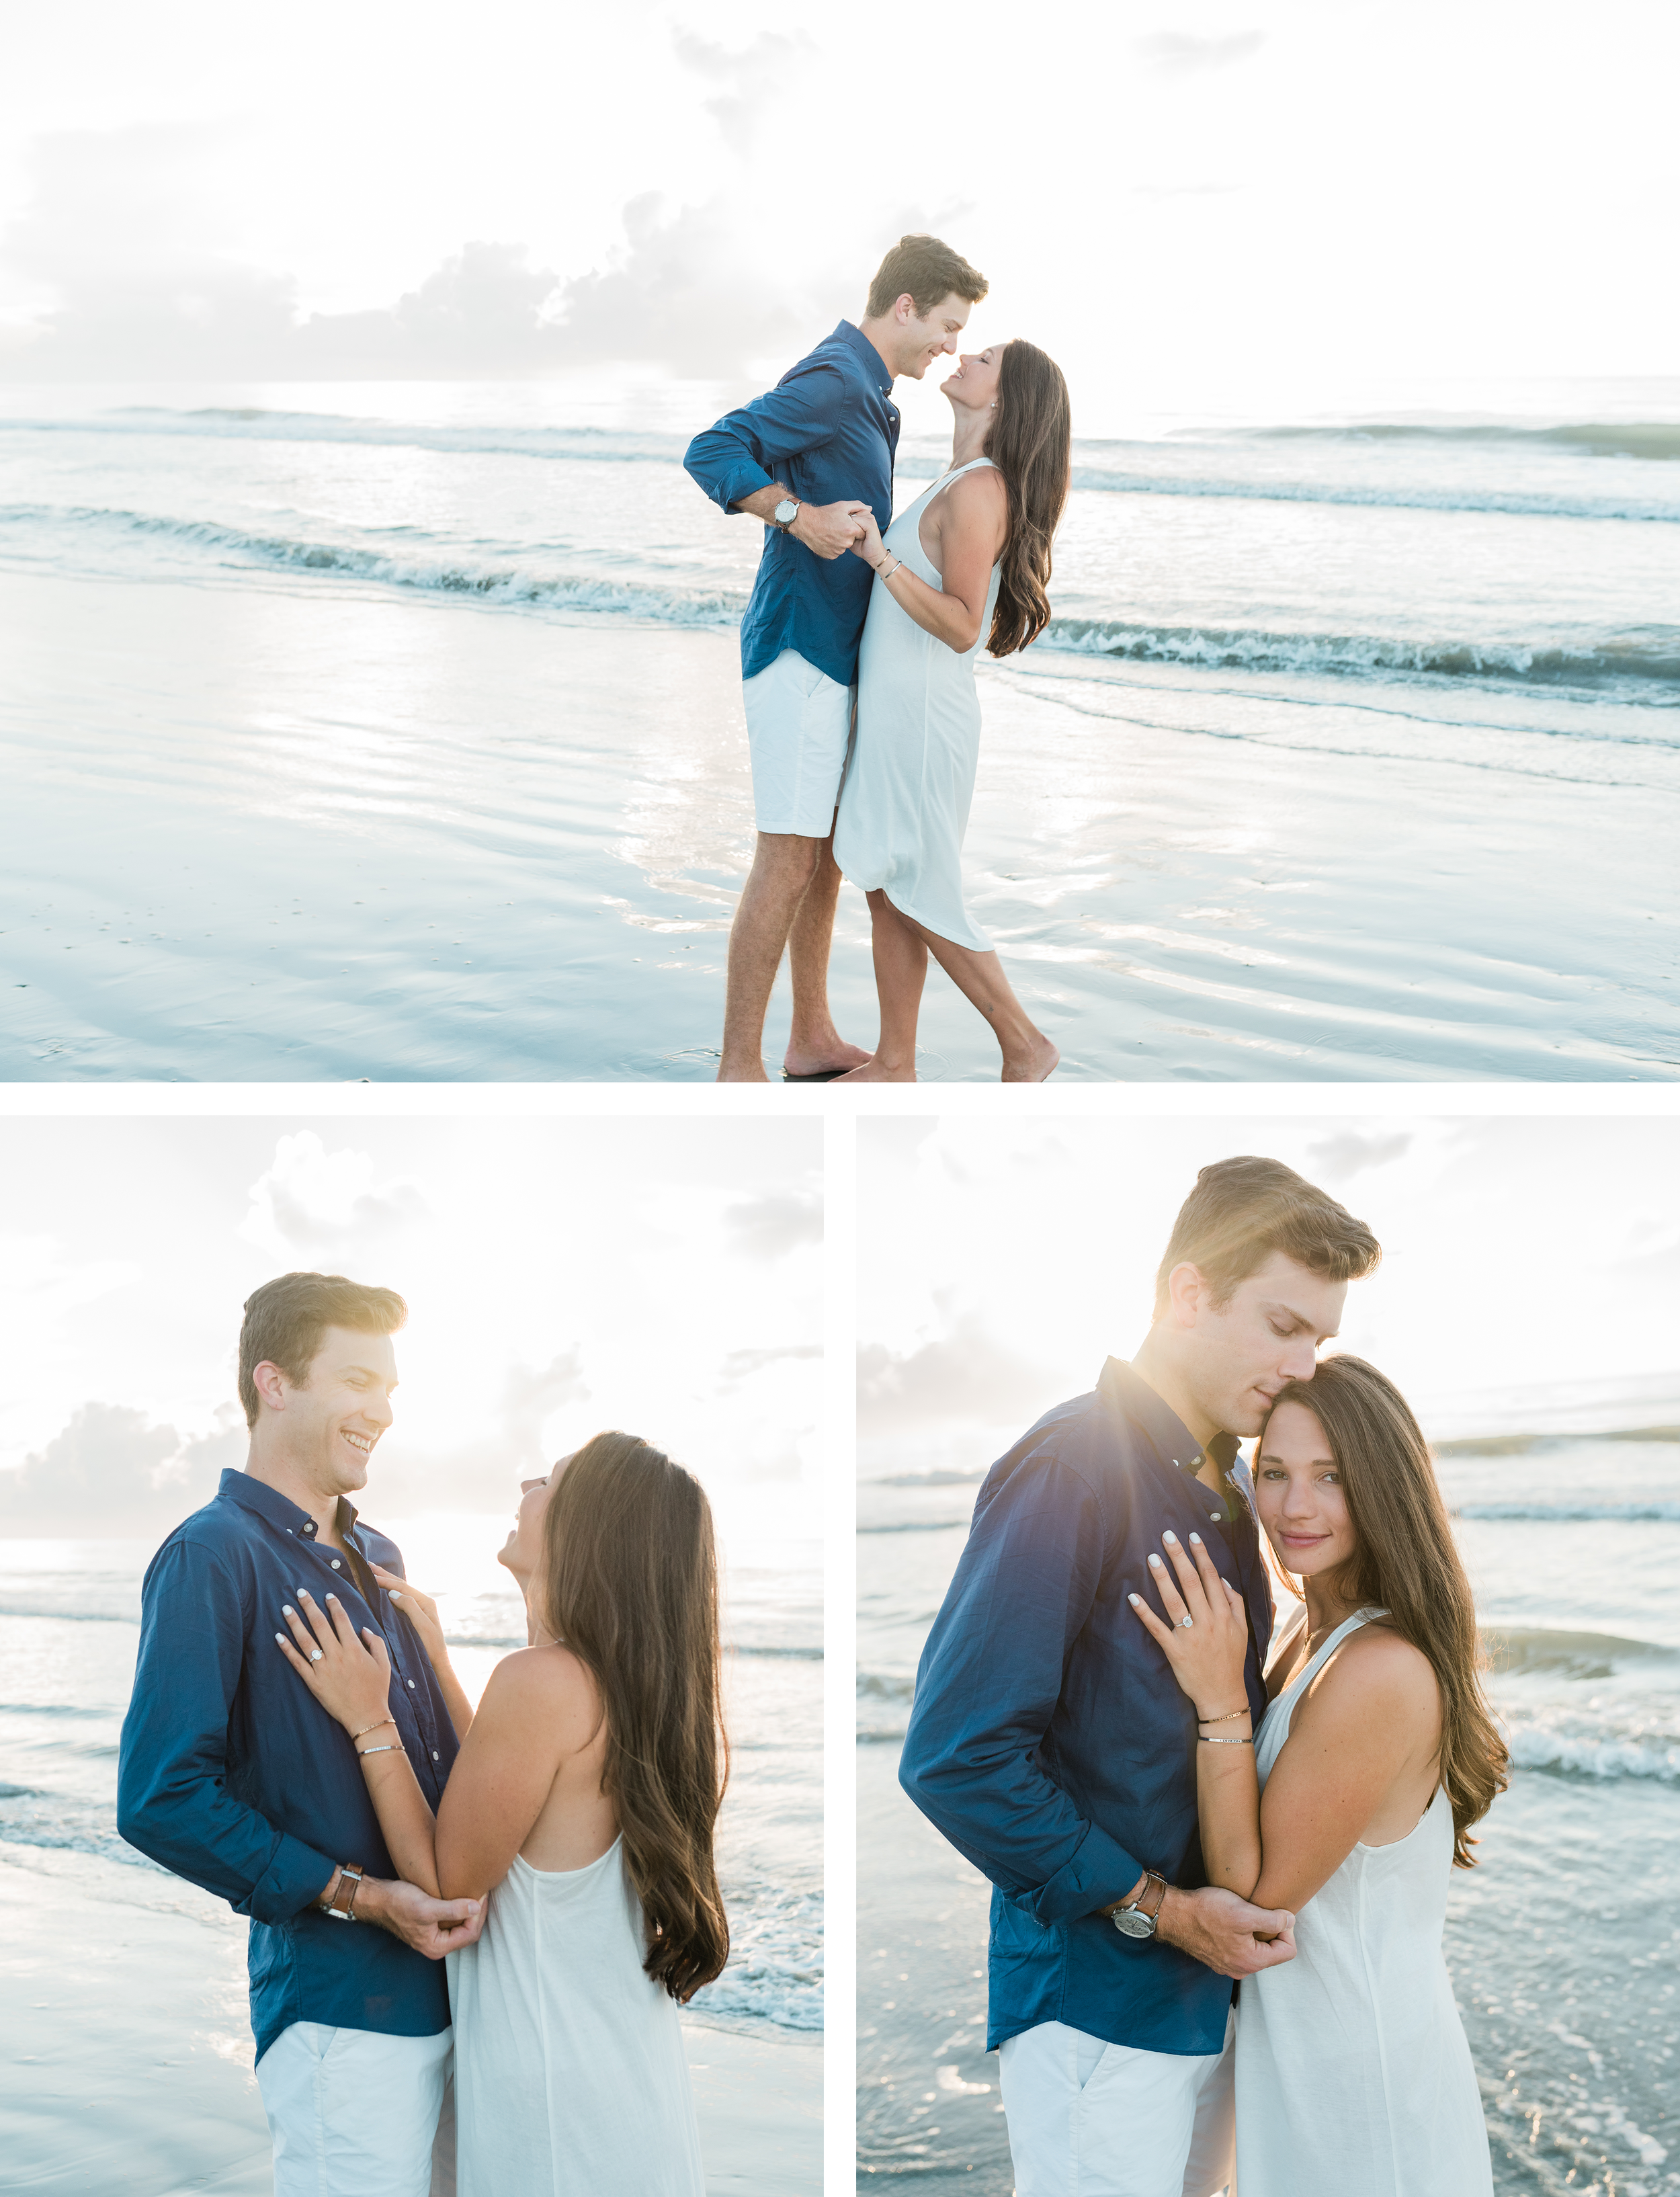 Evan Haley Engagement_Pawleys Island SC_Kristen Paige Photography_Gallery 14.png